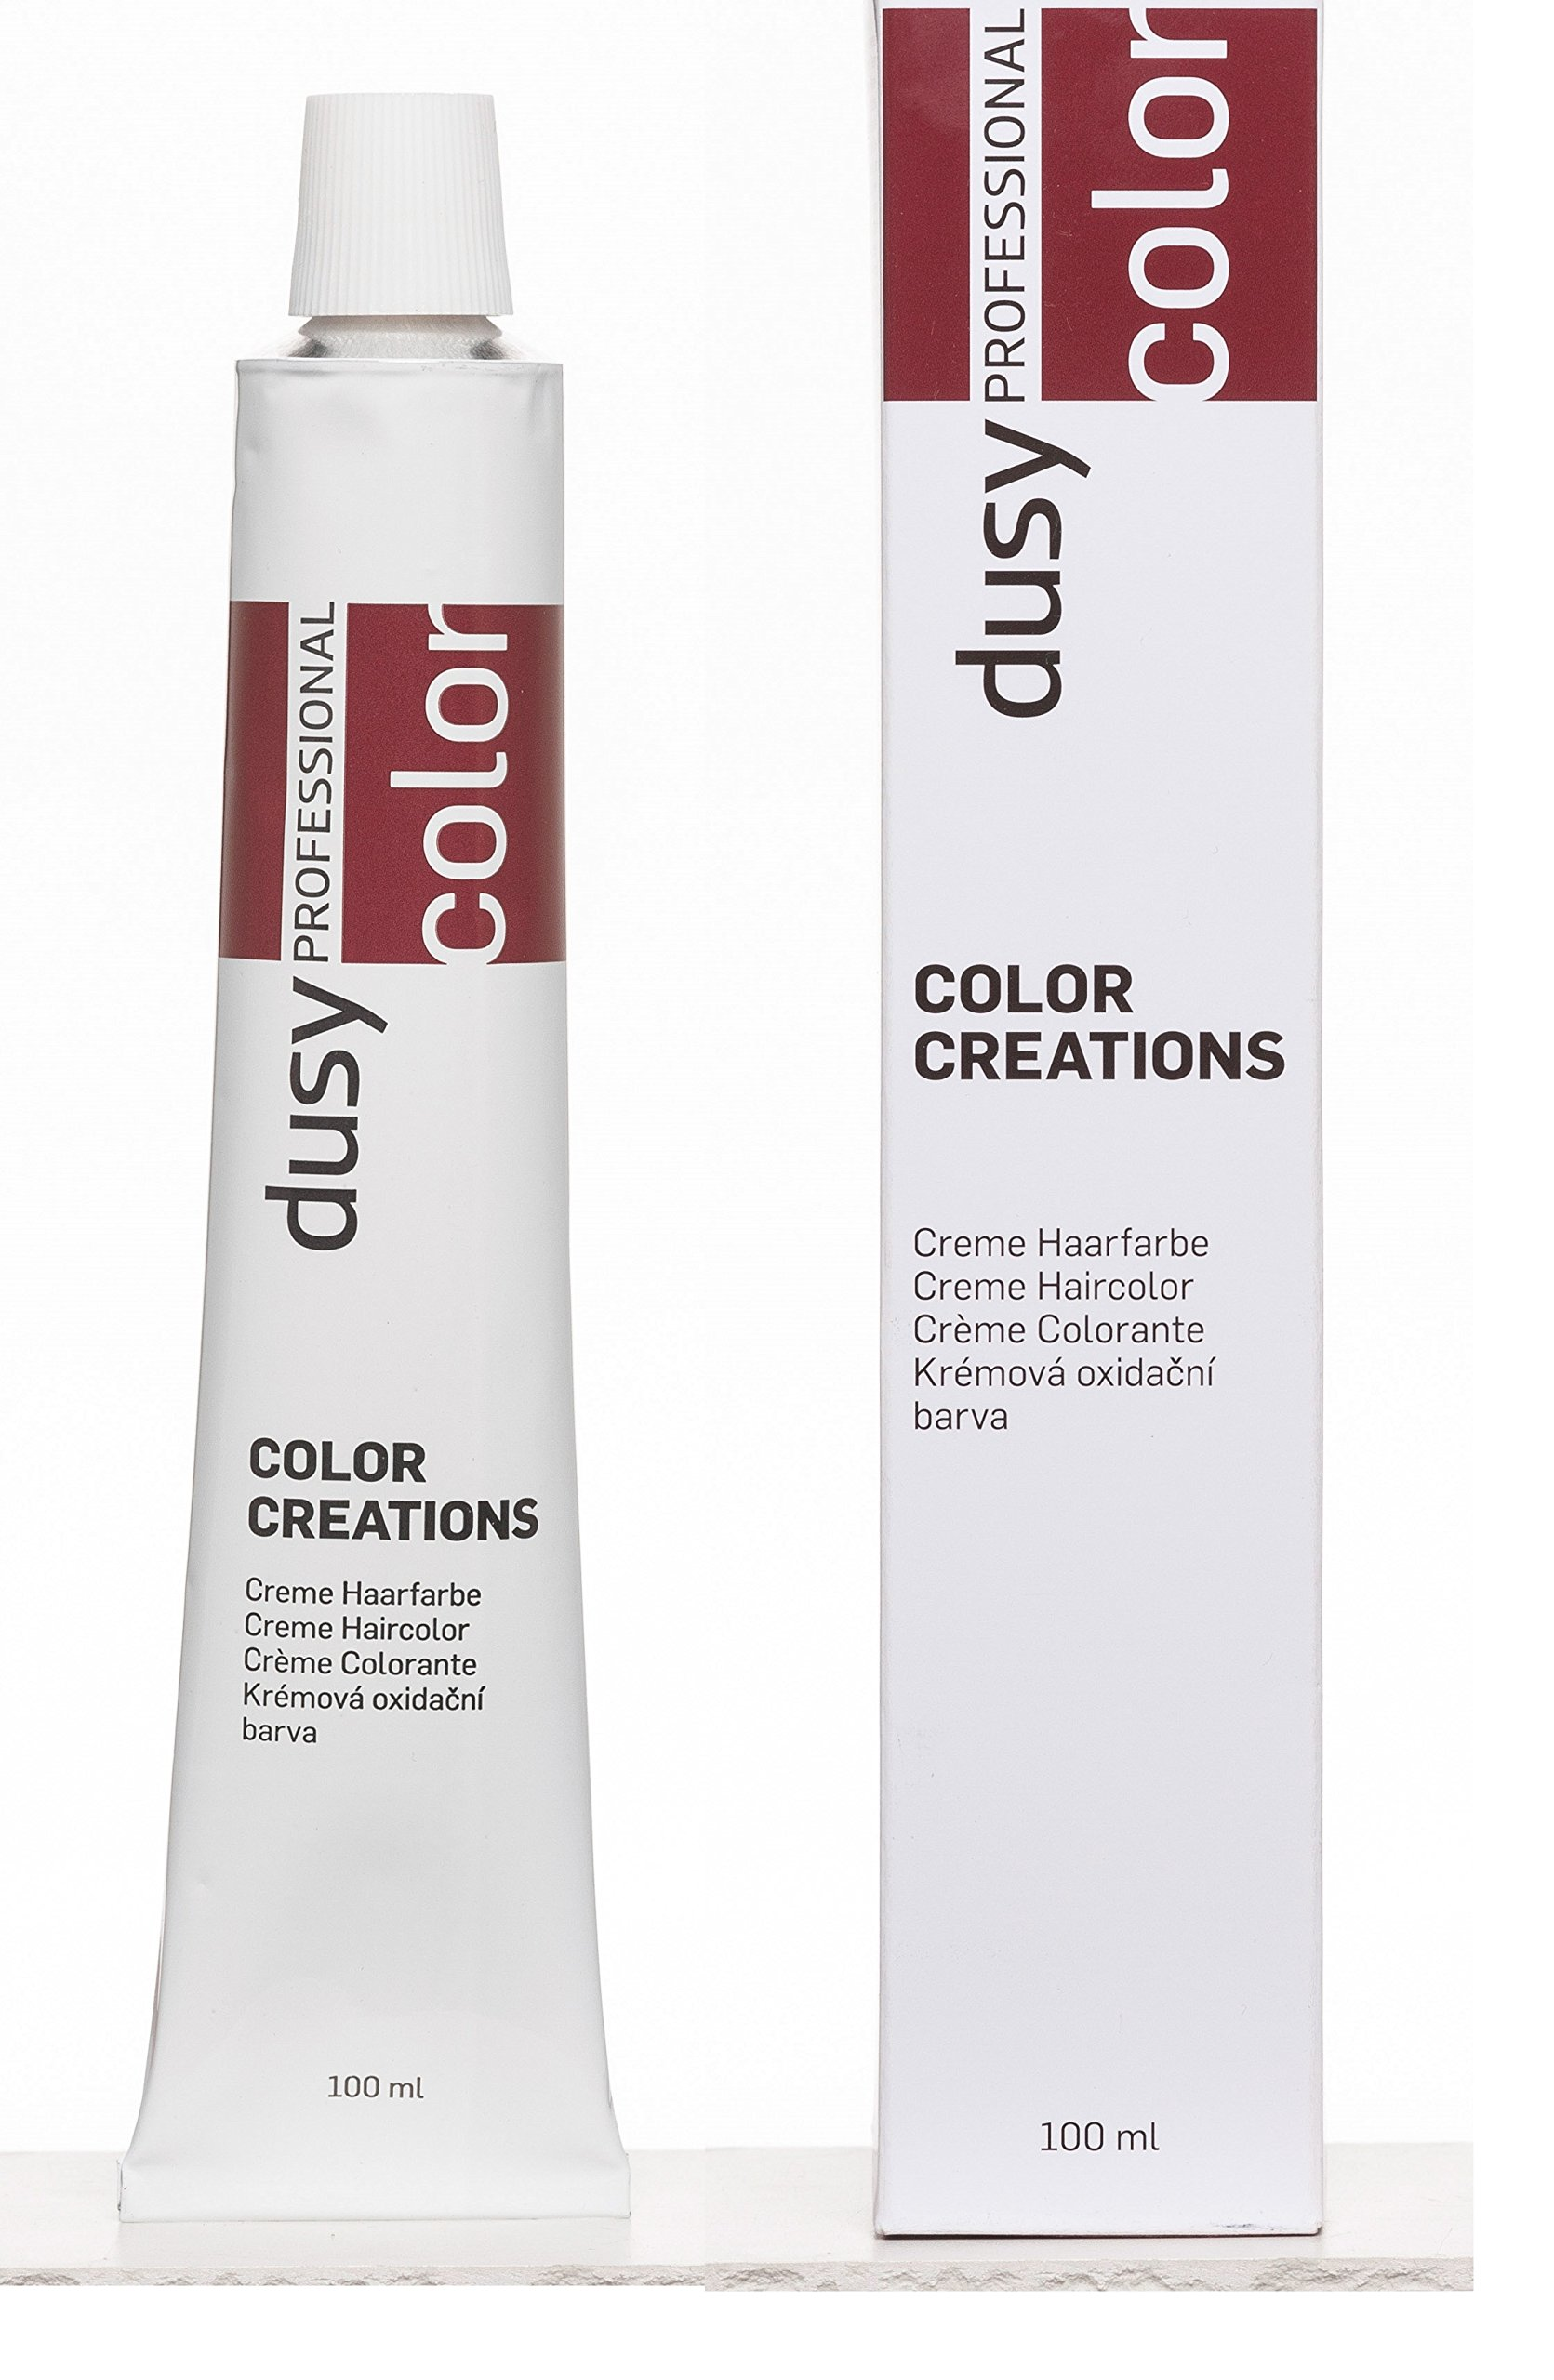 Dusy professional color Creations Intensive Reds 66.46 capelli biondo scuro intenso rosso – viola 1